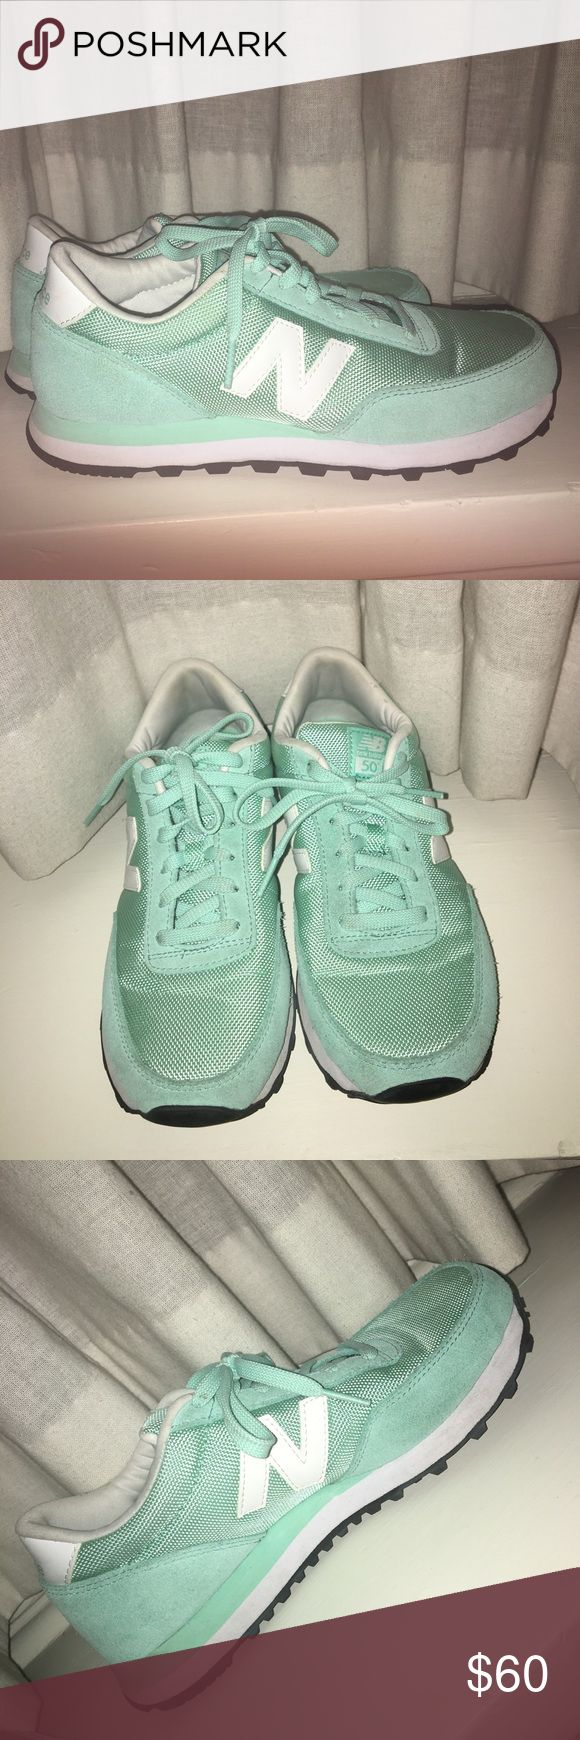 Mint green New Balance sneakers New Balance 501 sneakers. Barely worn. Perfect condition New Balance Shoes Sneakers